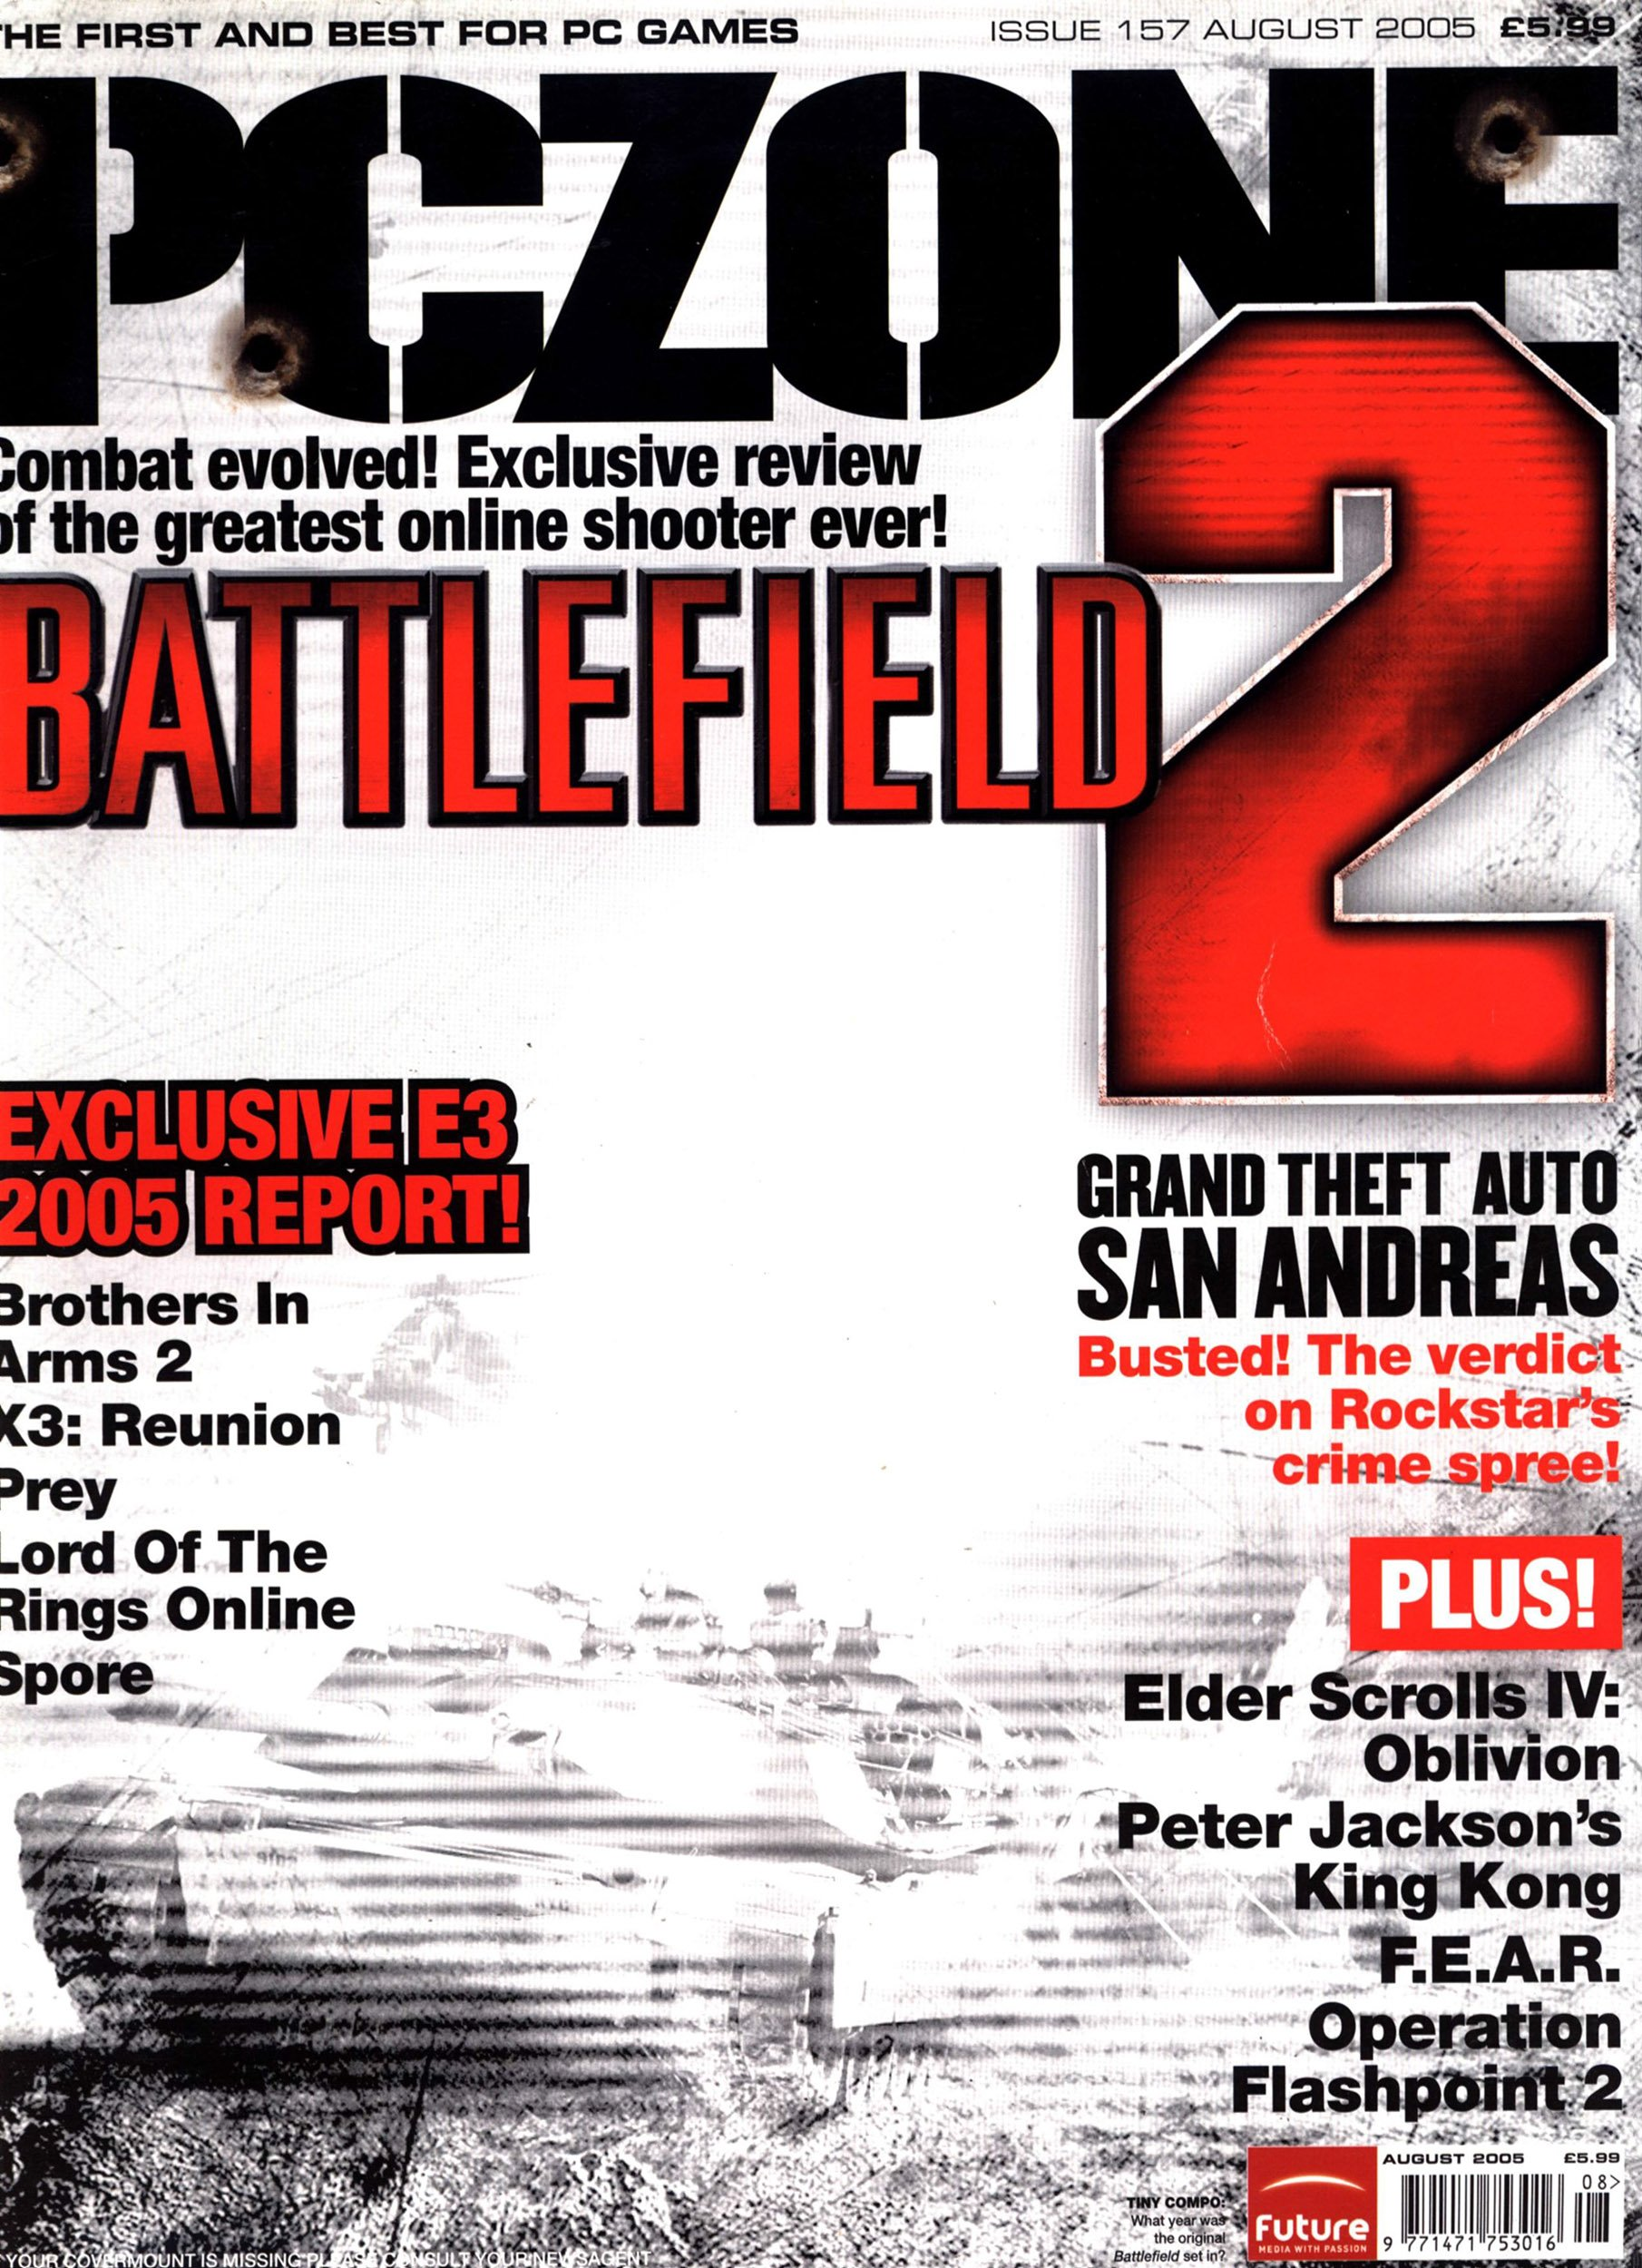 PC Zone Issue 157 (August 2005)